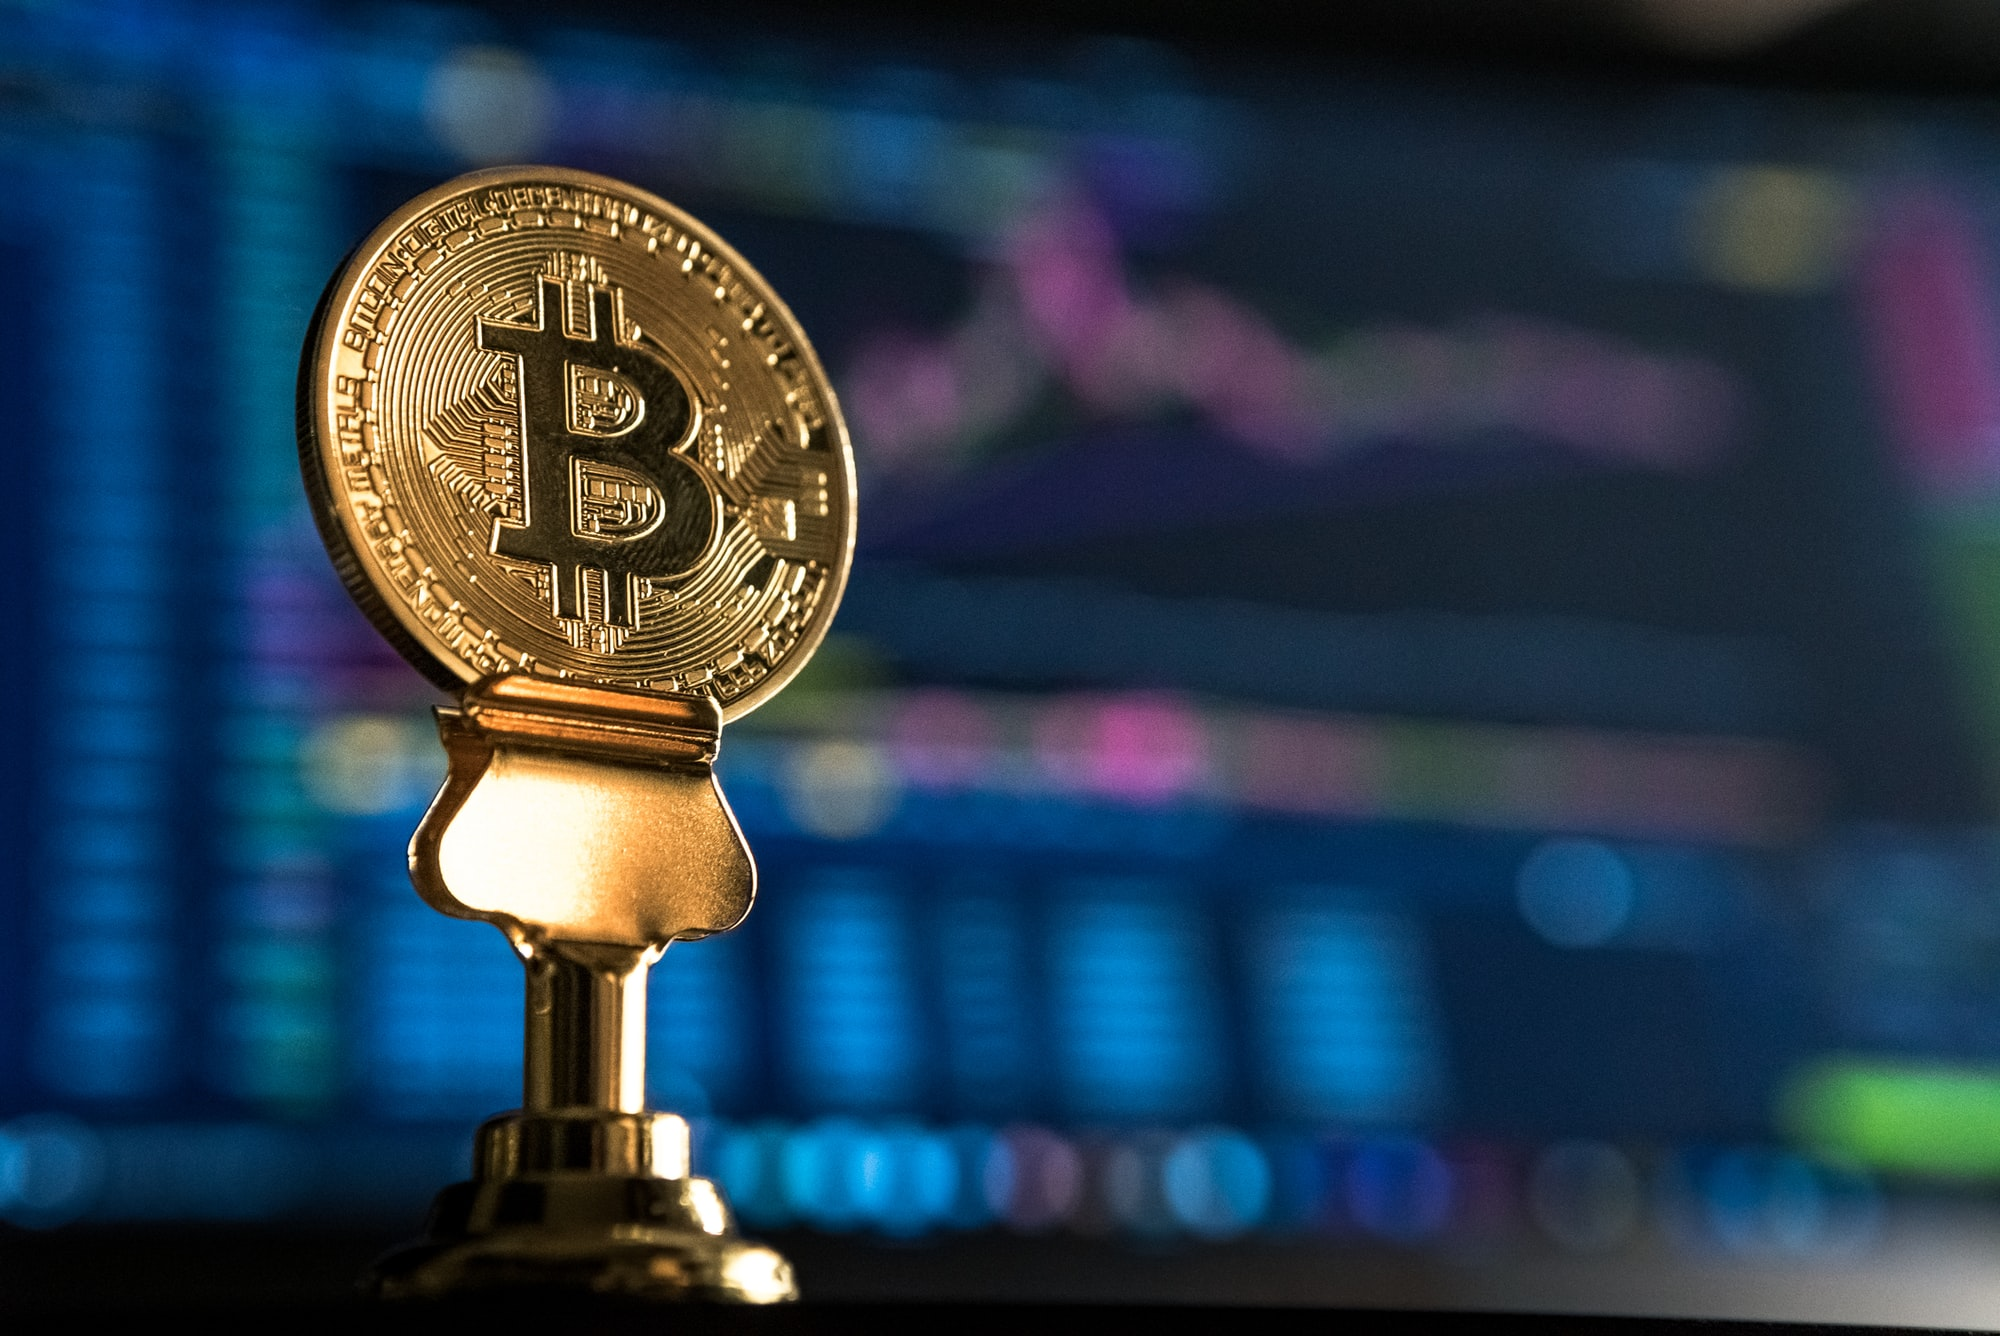 Over 10 crore Indians own cryptocurrency, highest in the world